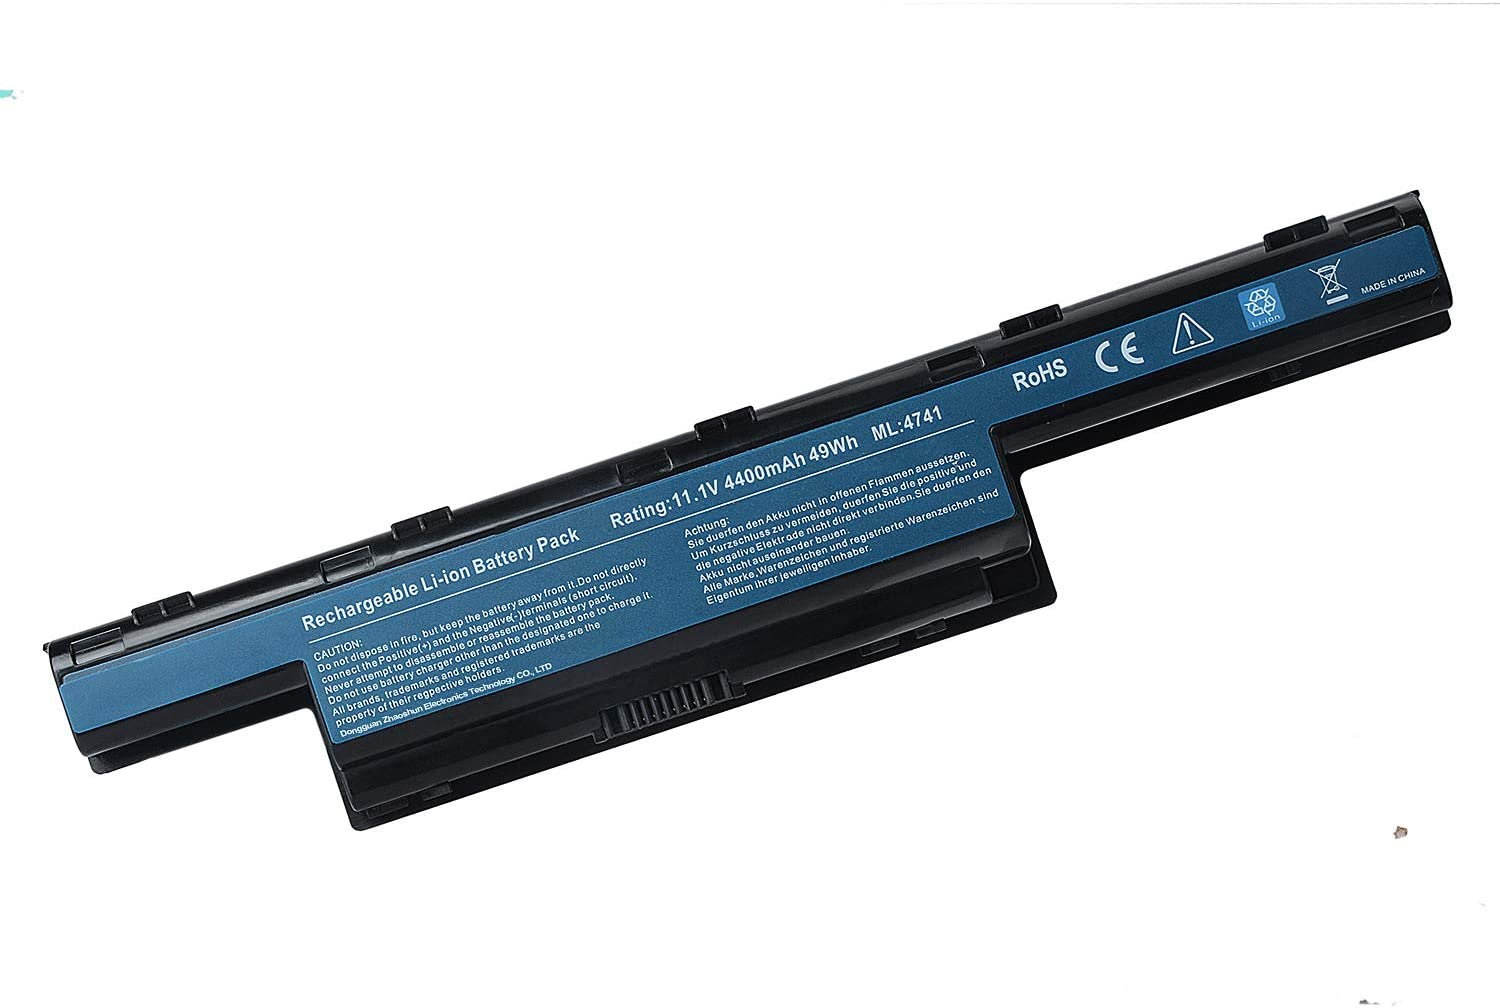 BND AS10D31 AS10D51 Laptop Battery for Acer/Gateway NV55C NV59C NV50A NV53 NV53A NE56R41U NE56R31U NV55C03U NV53A24U NV56R - 12 Months Warranty [6-Cell 4400mAh/49Wh]